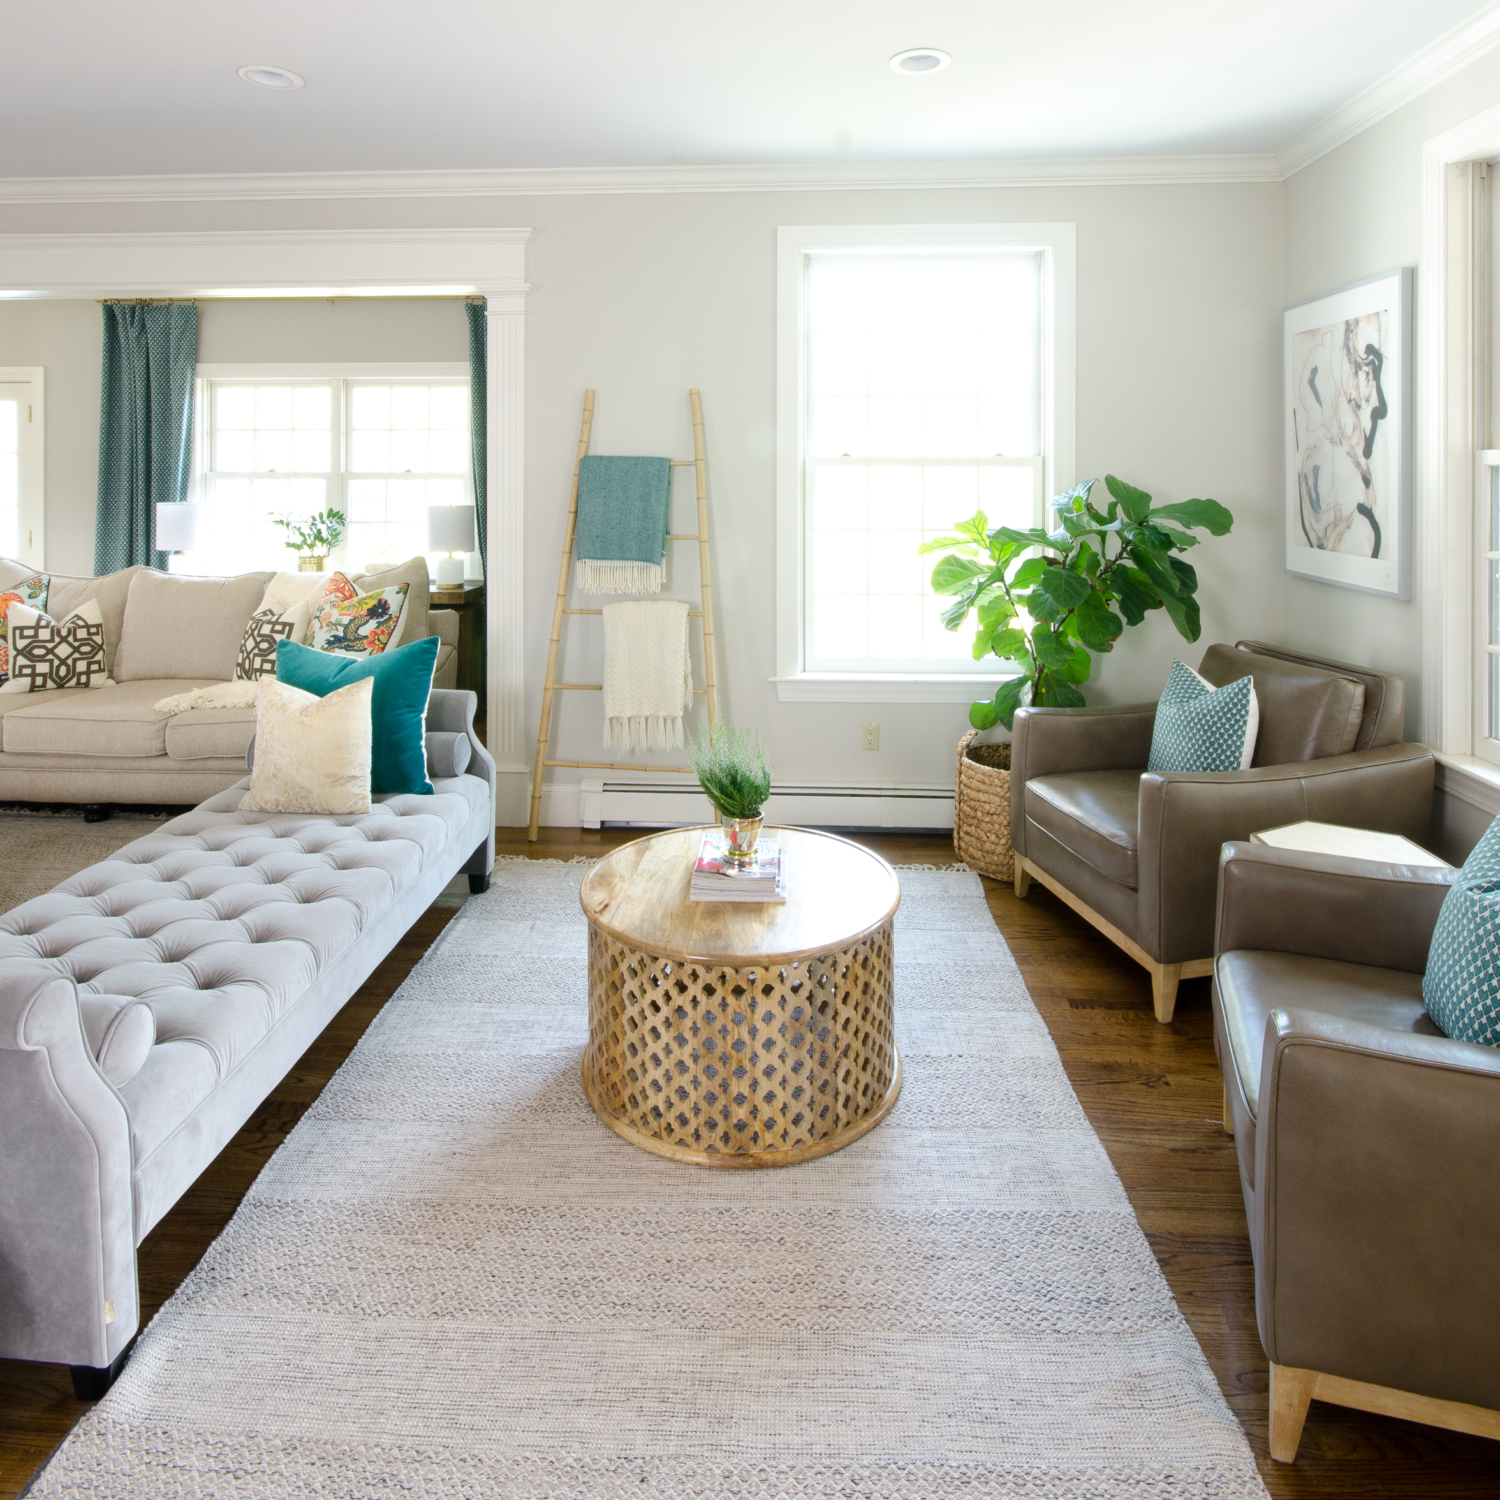 Beautiful neutral family room with pops of color and wood accents. Backless sofa divides the long room into two seating areas. Nice mix of traditional and rustic styles.